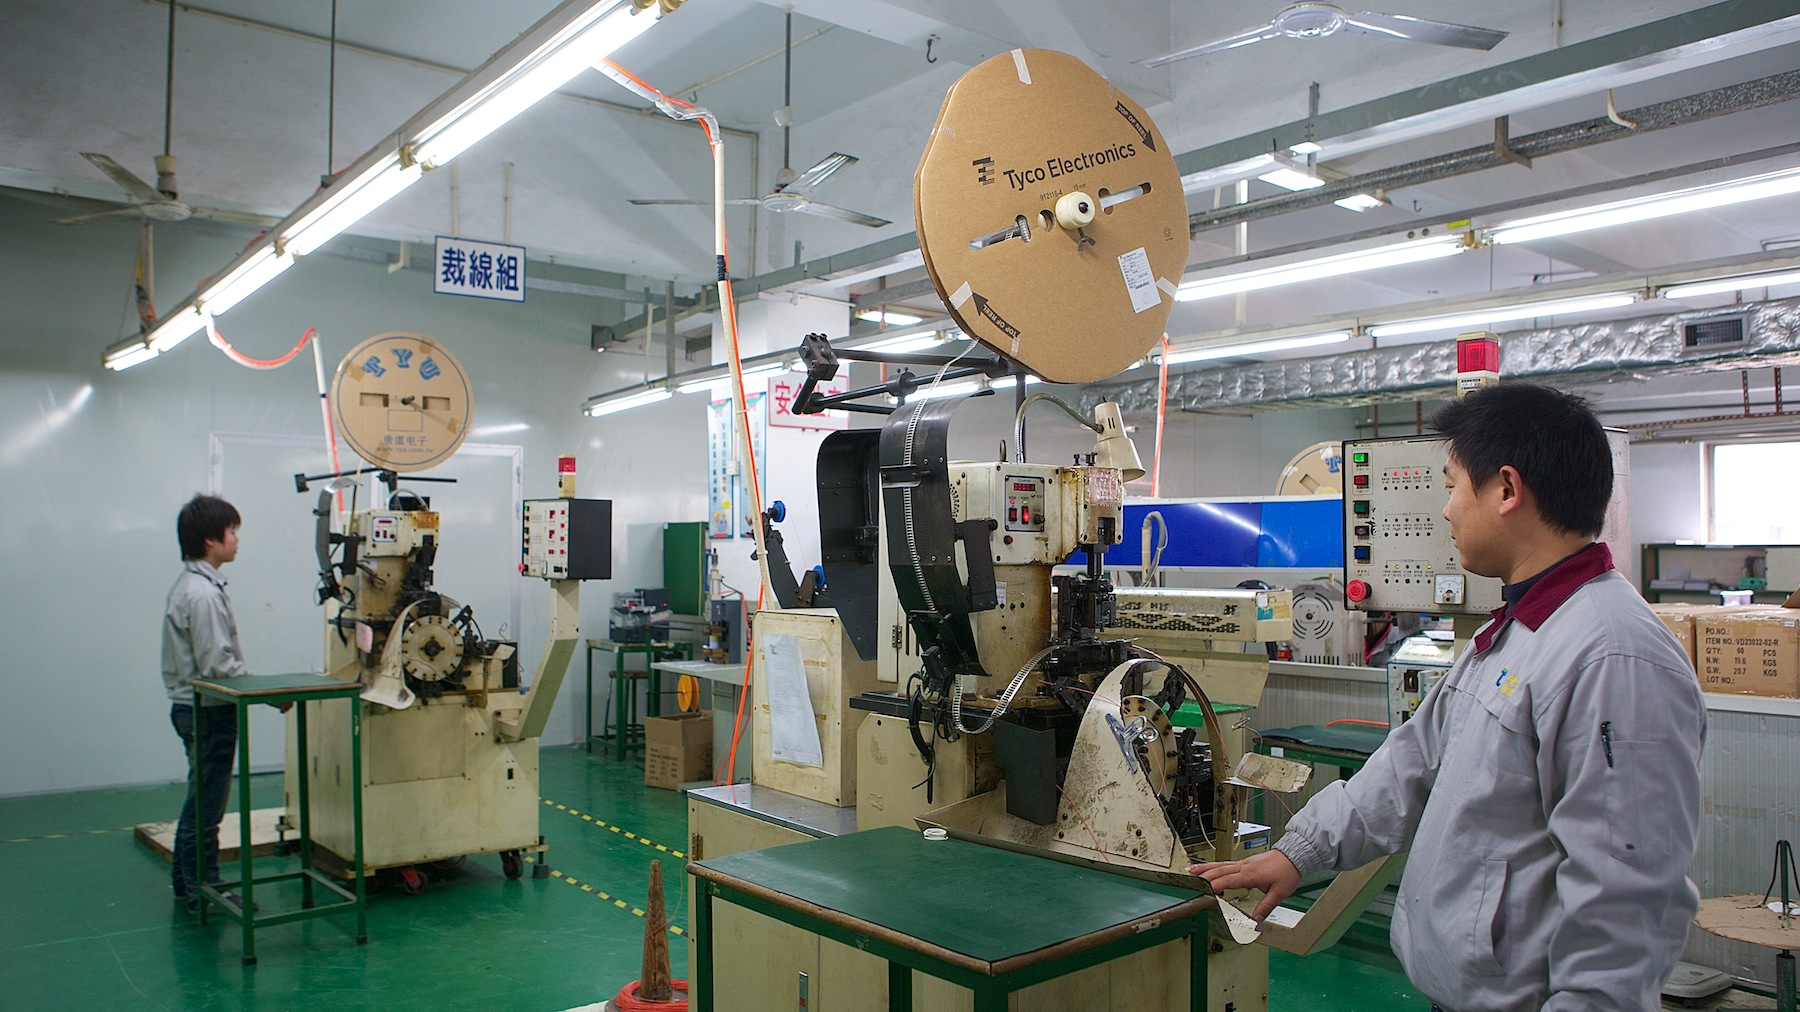 Cable Assembly Manufacturing Facility